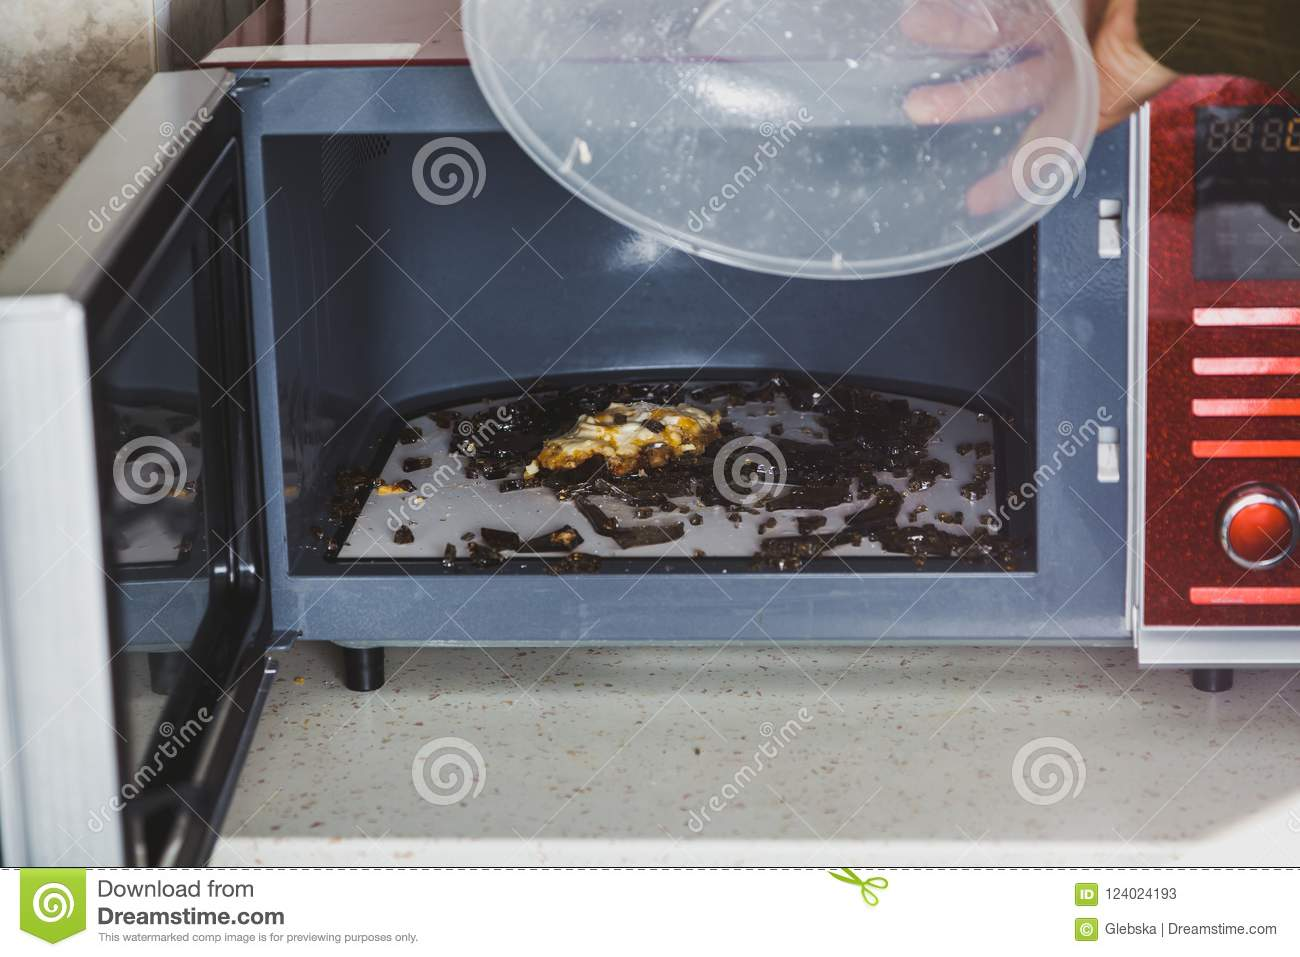 https www dreamstime com plate broke microwave oven heating glassware shattered small pieces hand lifts lid glass exploded image124024193